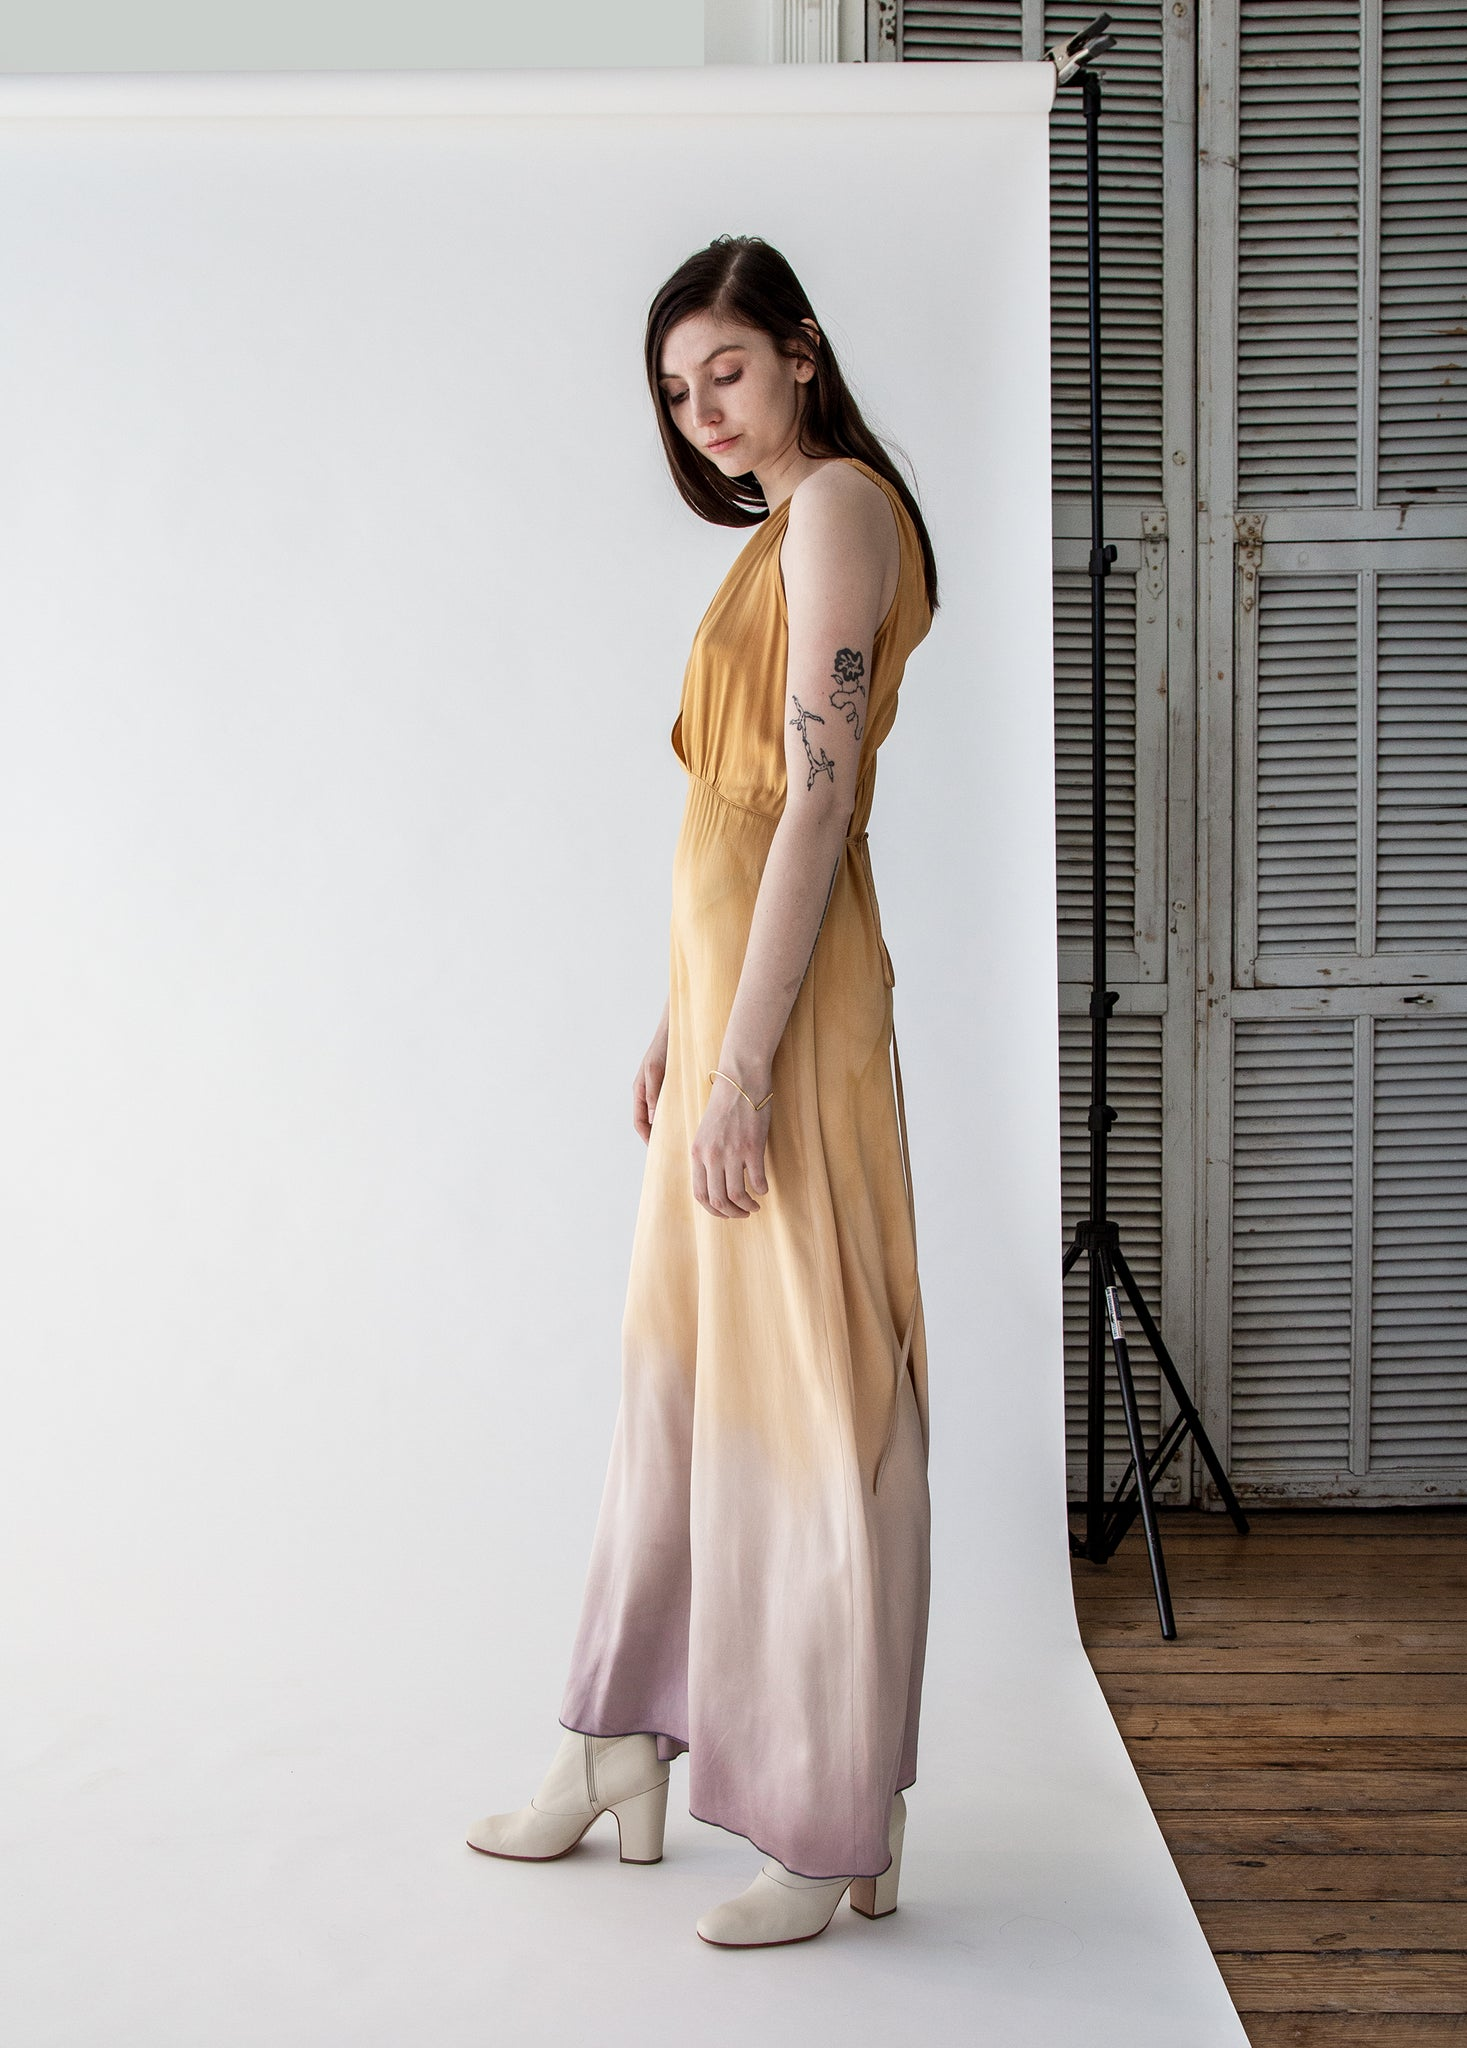 Kate Slip Dress in Golden Sun Tie Dye